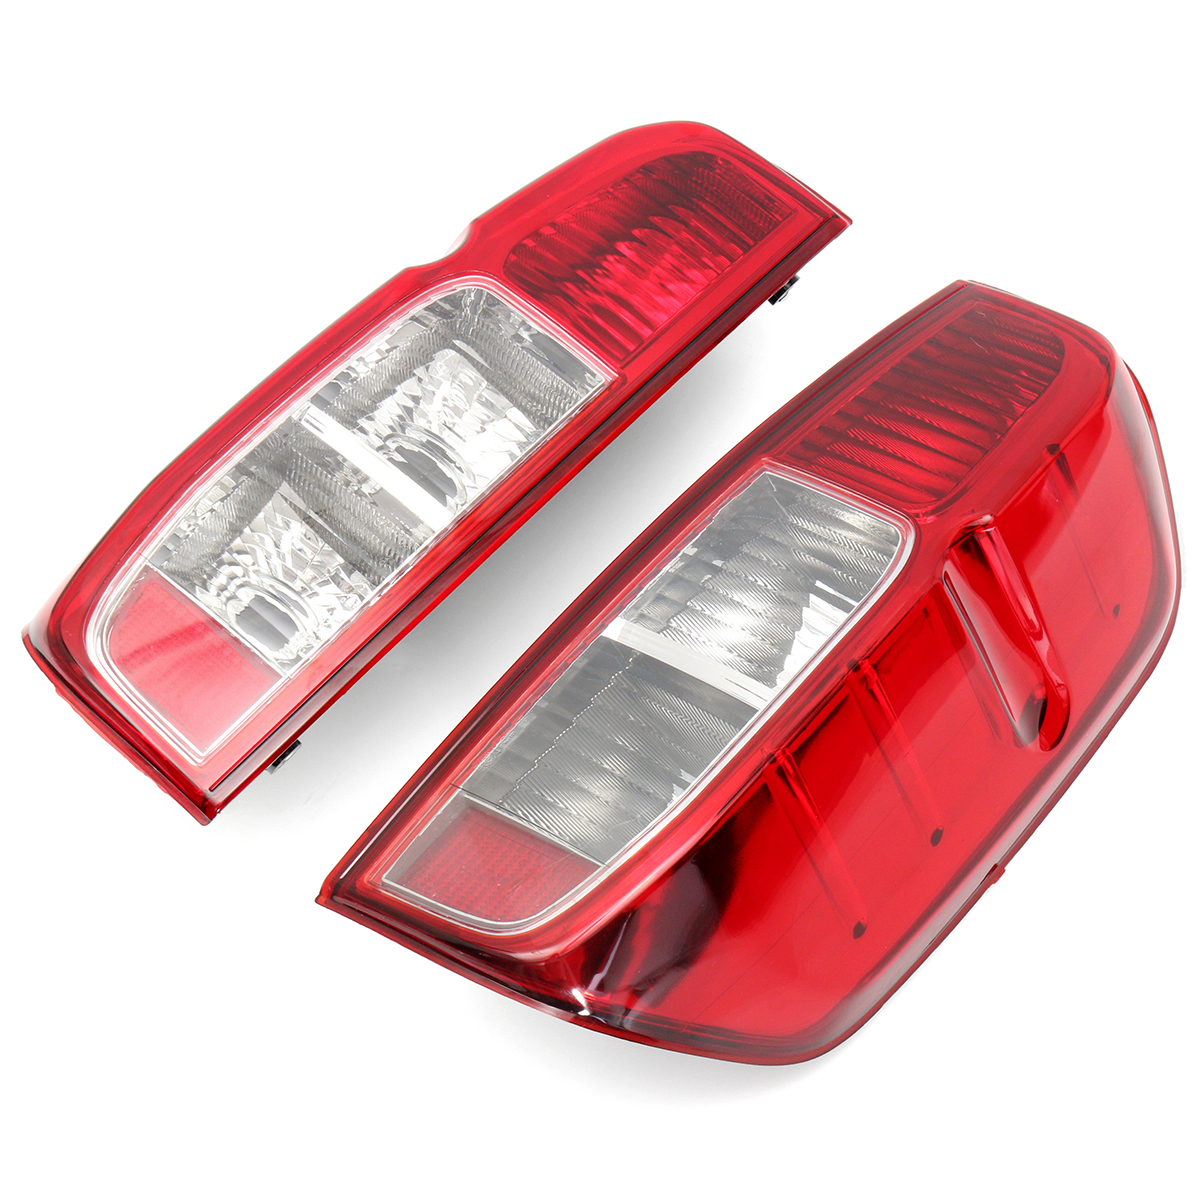 2Pcs LEFT/RIGHT Rear Tail Light Driver Passenger Side Lamp For Nissan NAVARA D40 2005-2015 mzorange1pcs driver side lh 8330a787 tail light taillamp rear lamp light for mitsubishi outlander 2013 2015